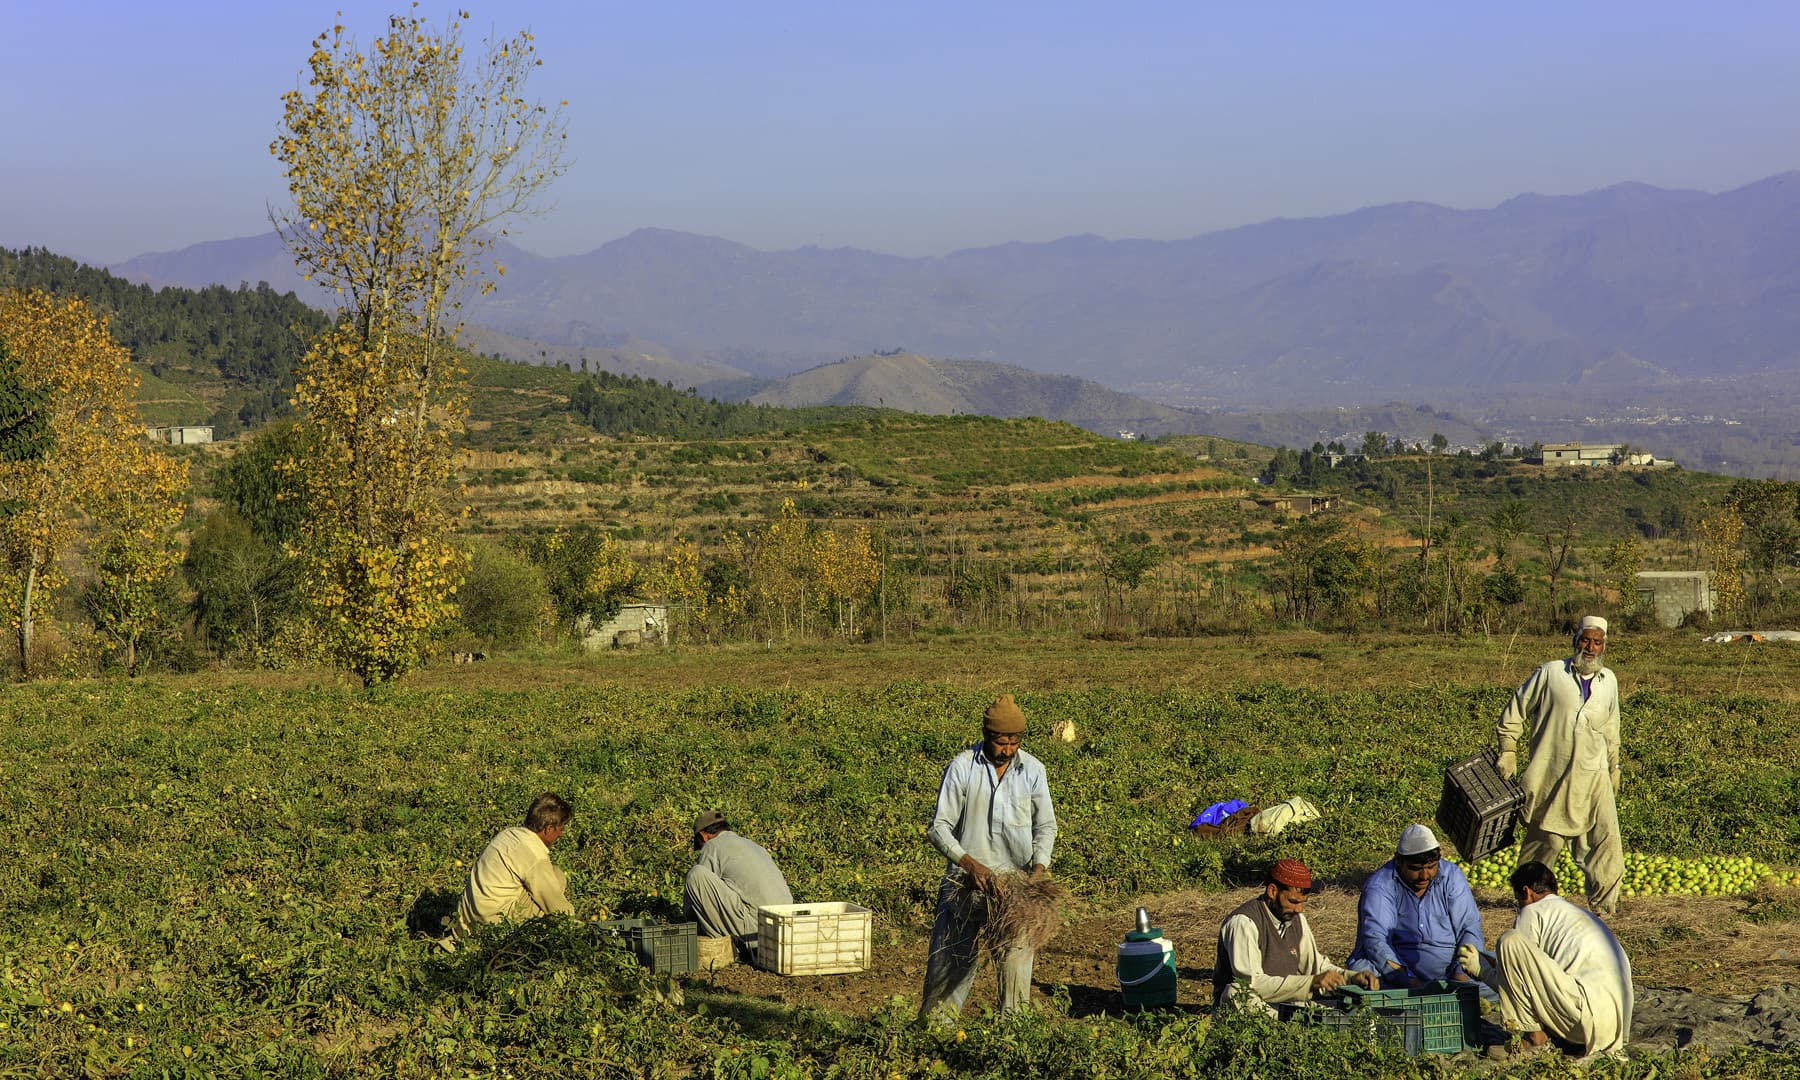 Labourers working in a field in Khwazakhela.